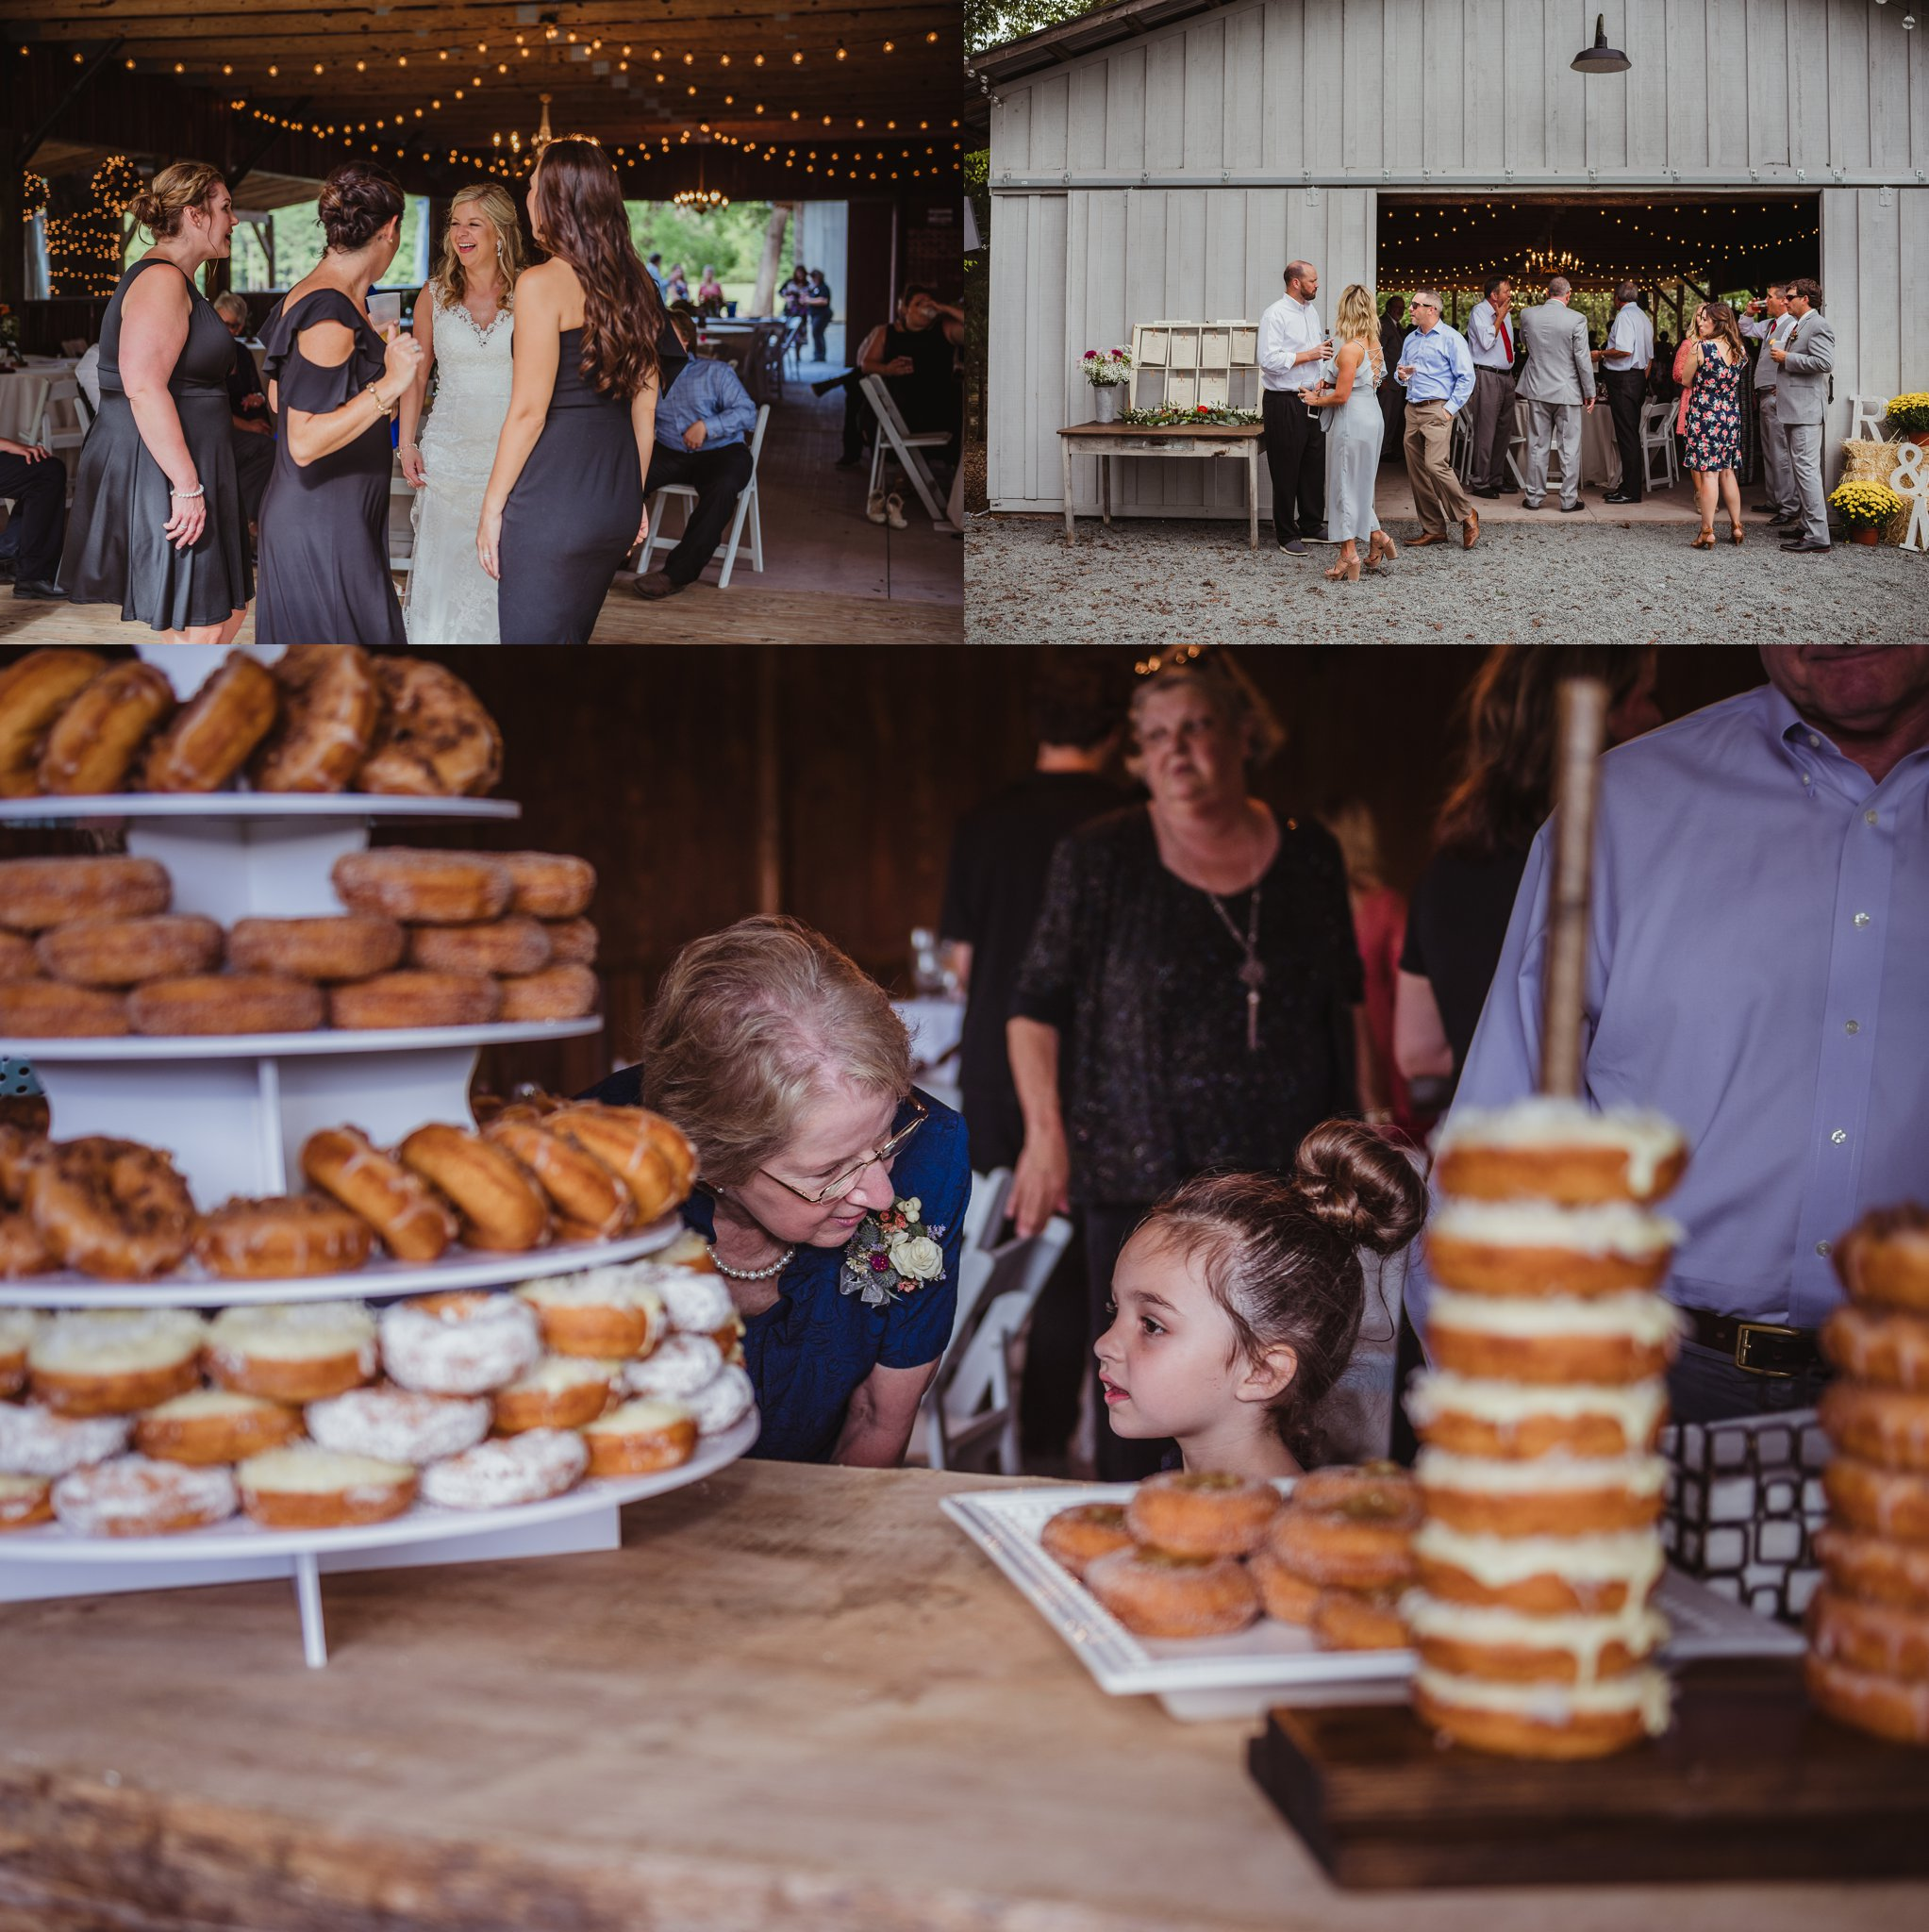 The bride and groom have fun with their guests during their wedding reception at Cedar Grove Acres near Raleigh, pictures by Rose Trail Images.